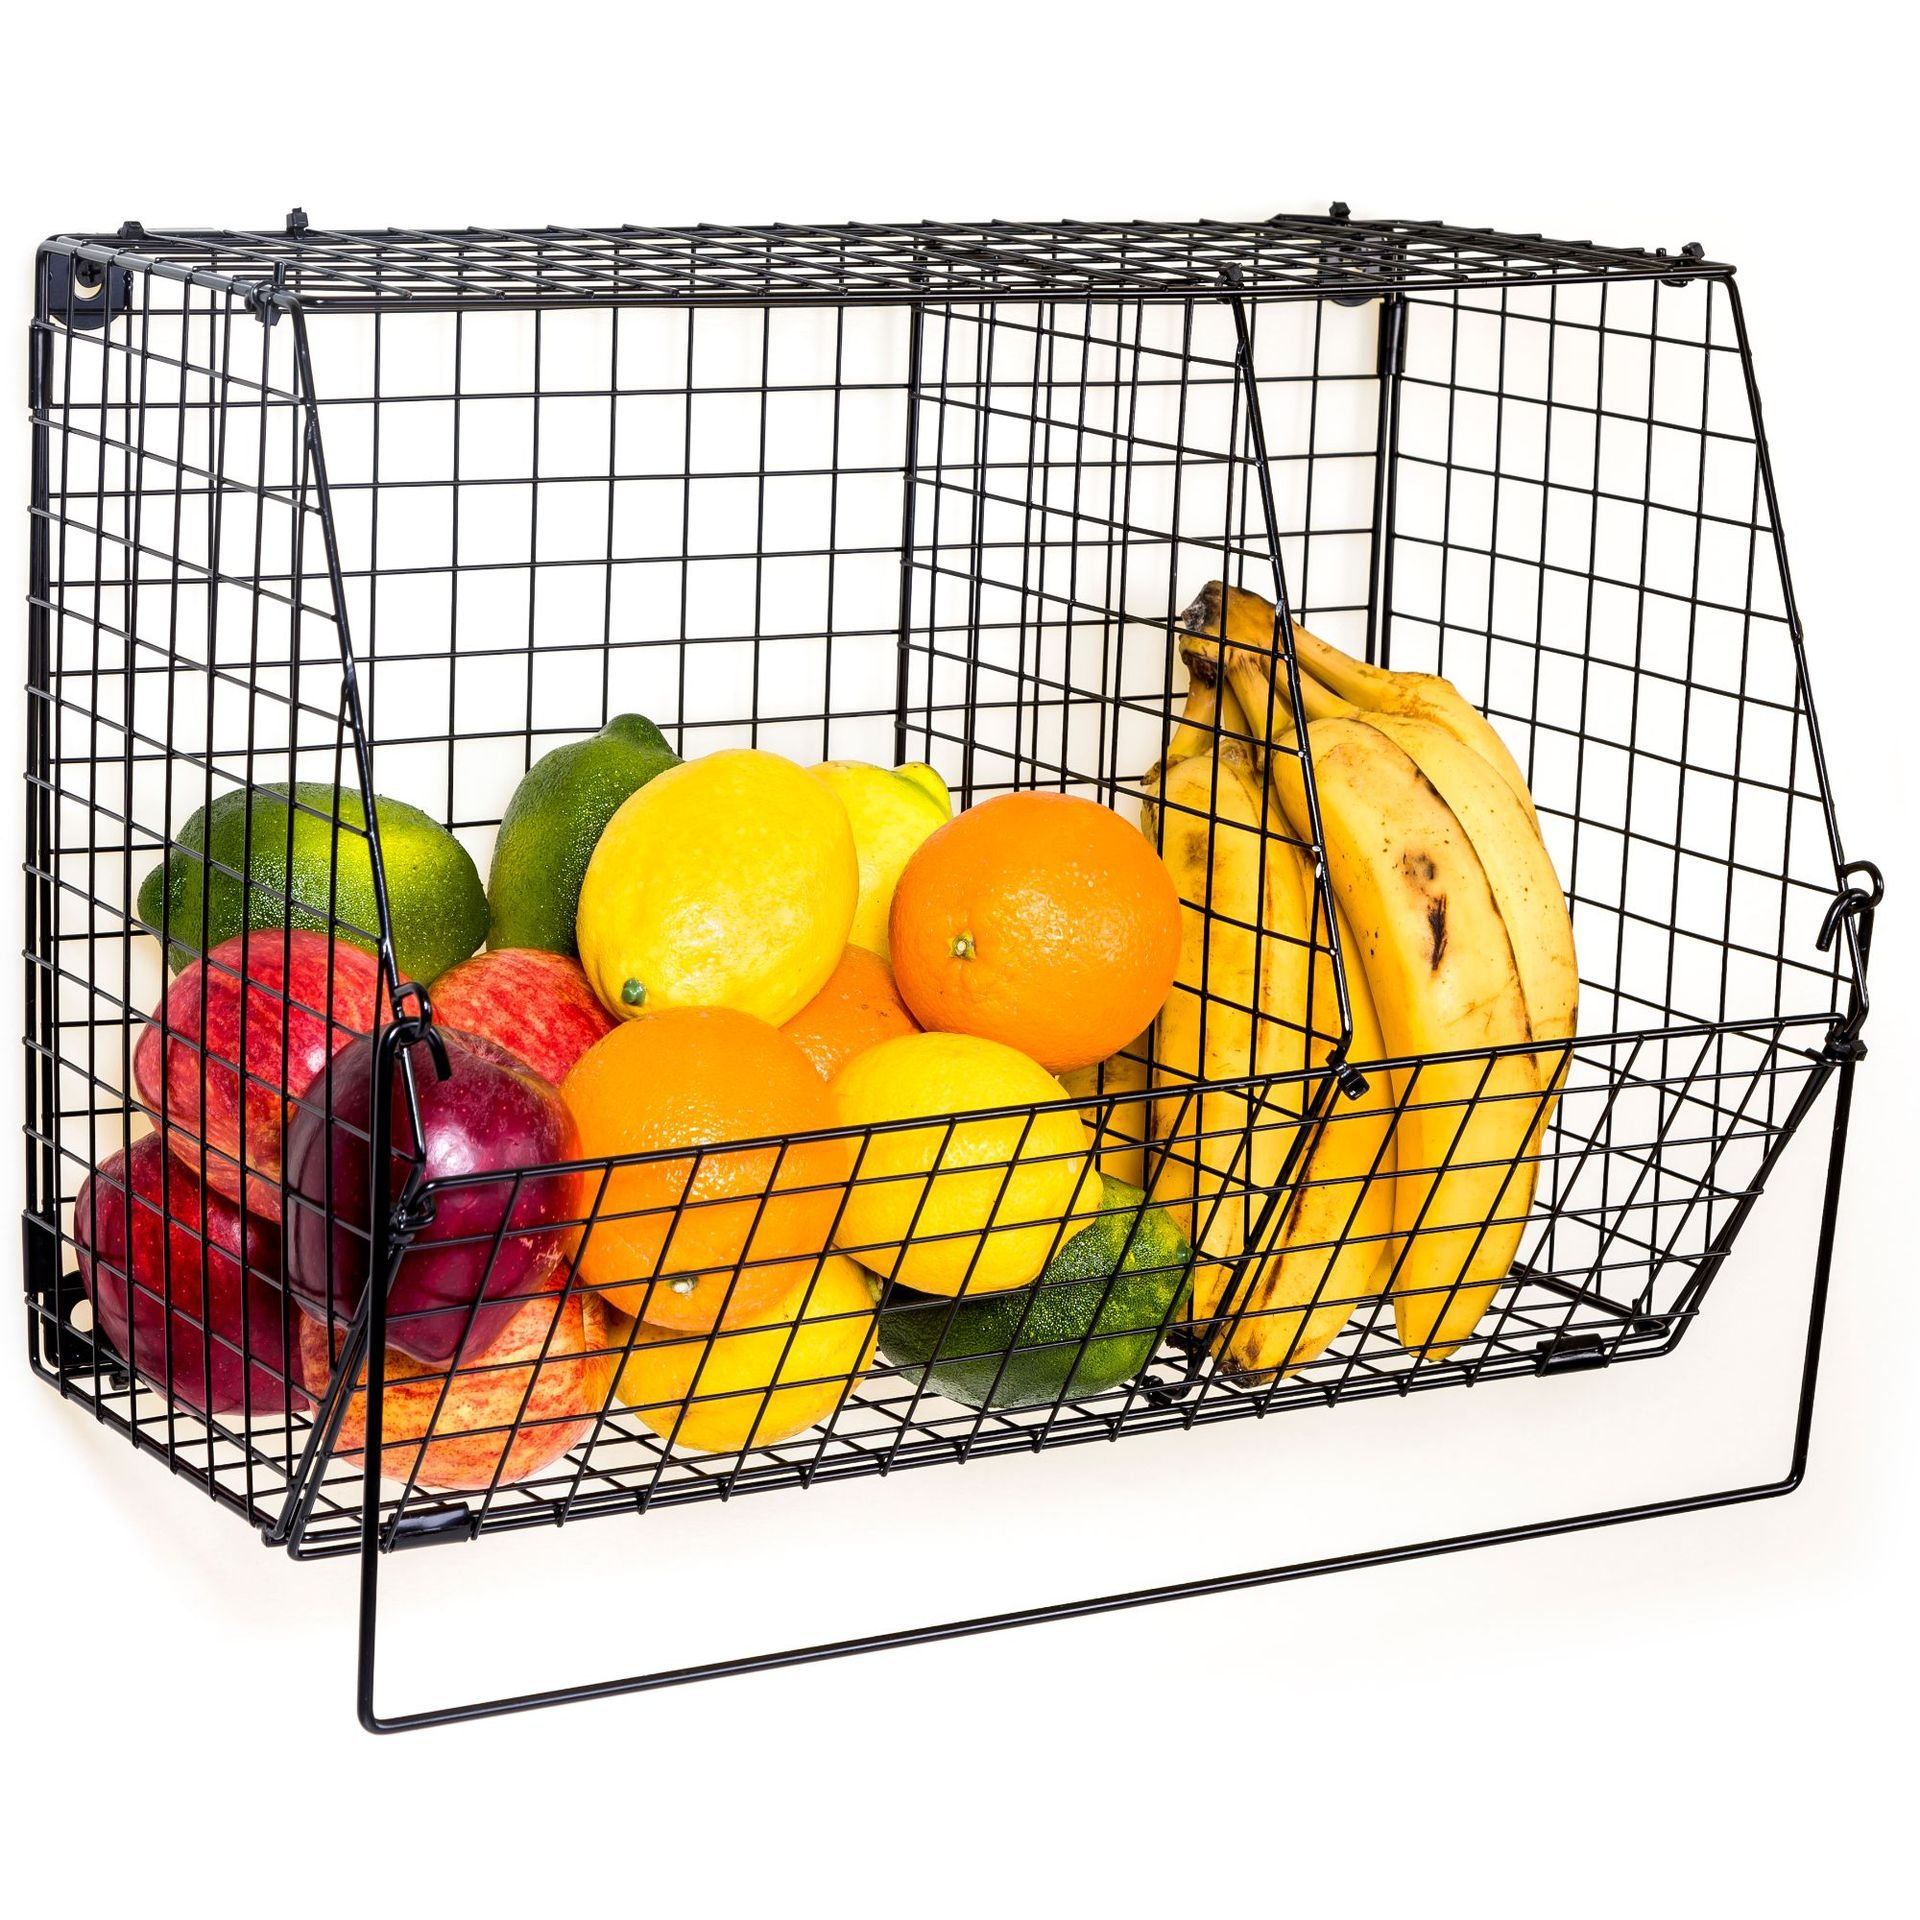 ChasBete Folding Metal Basket Fruit Bowls Organizer Storage Basket Rack Wall Mounted for Kitchen Bathroom